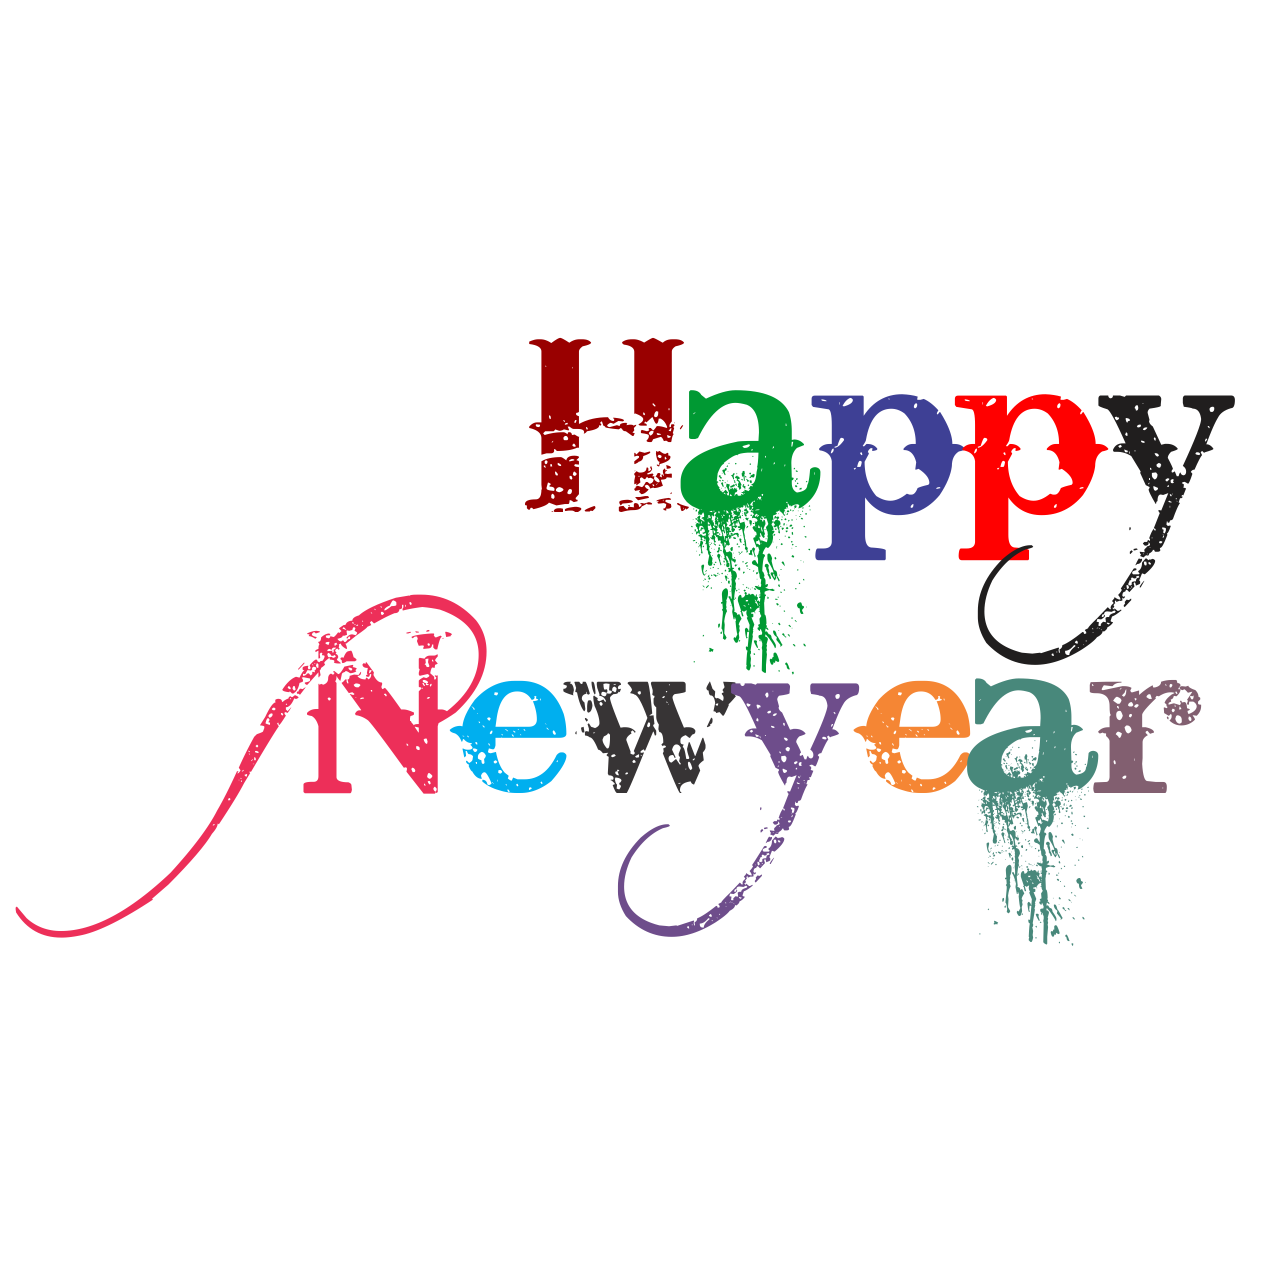 Happy new year text. Png picsart download clipart black and white library